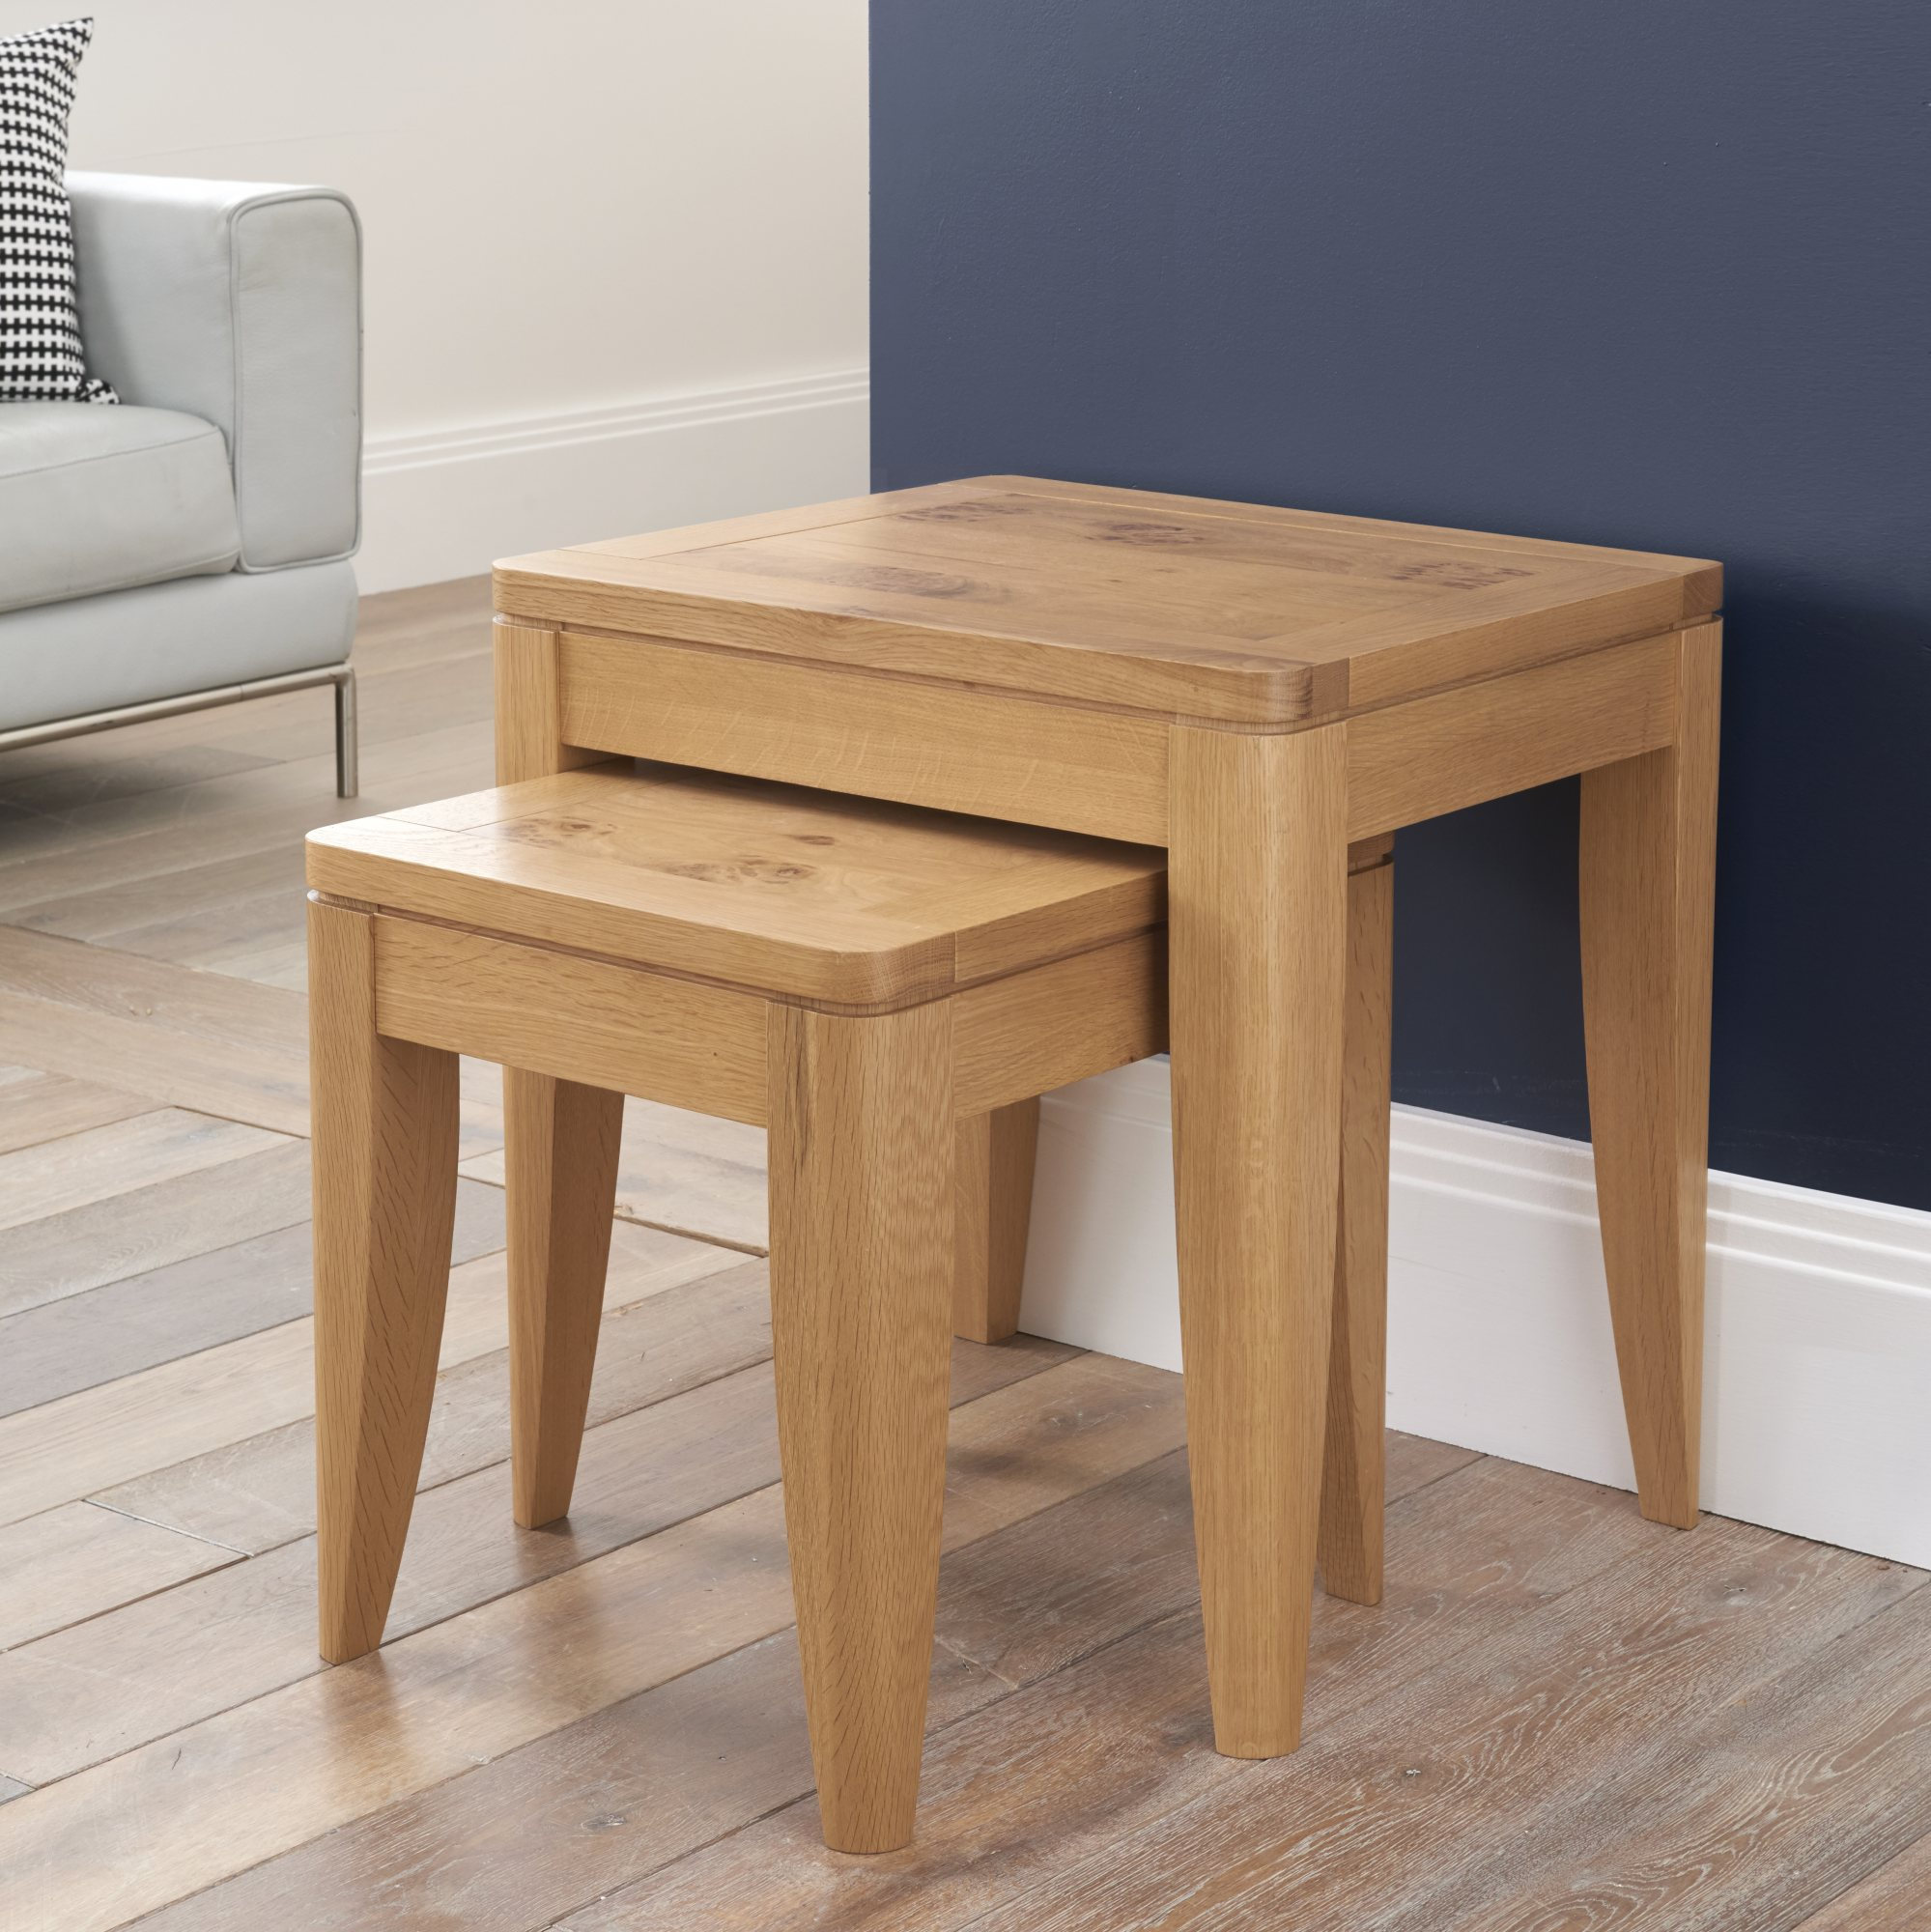 WILLOW PARK NEST OF TABLES L55cm x D45cm x H56cm